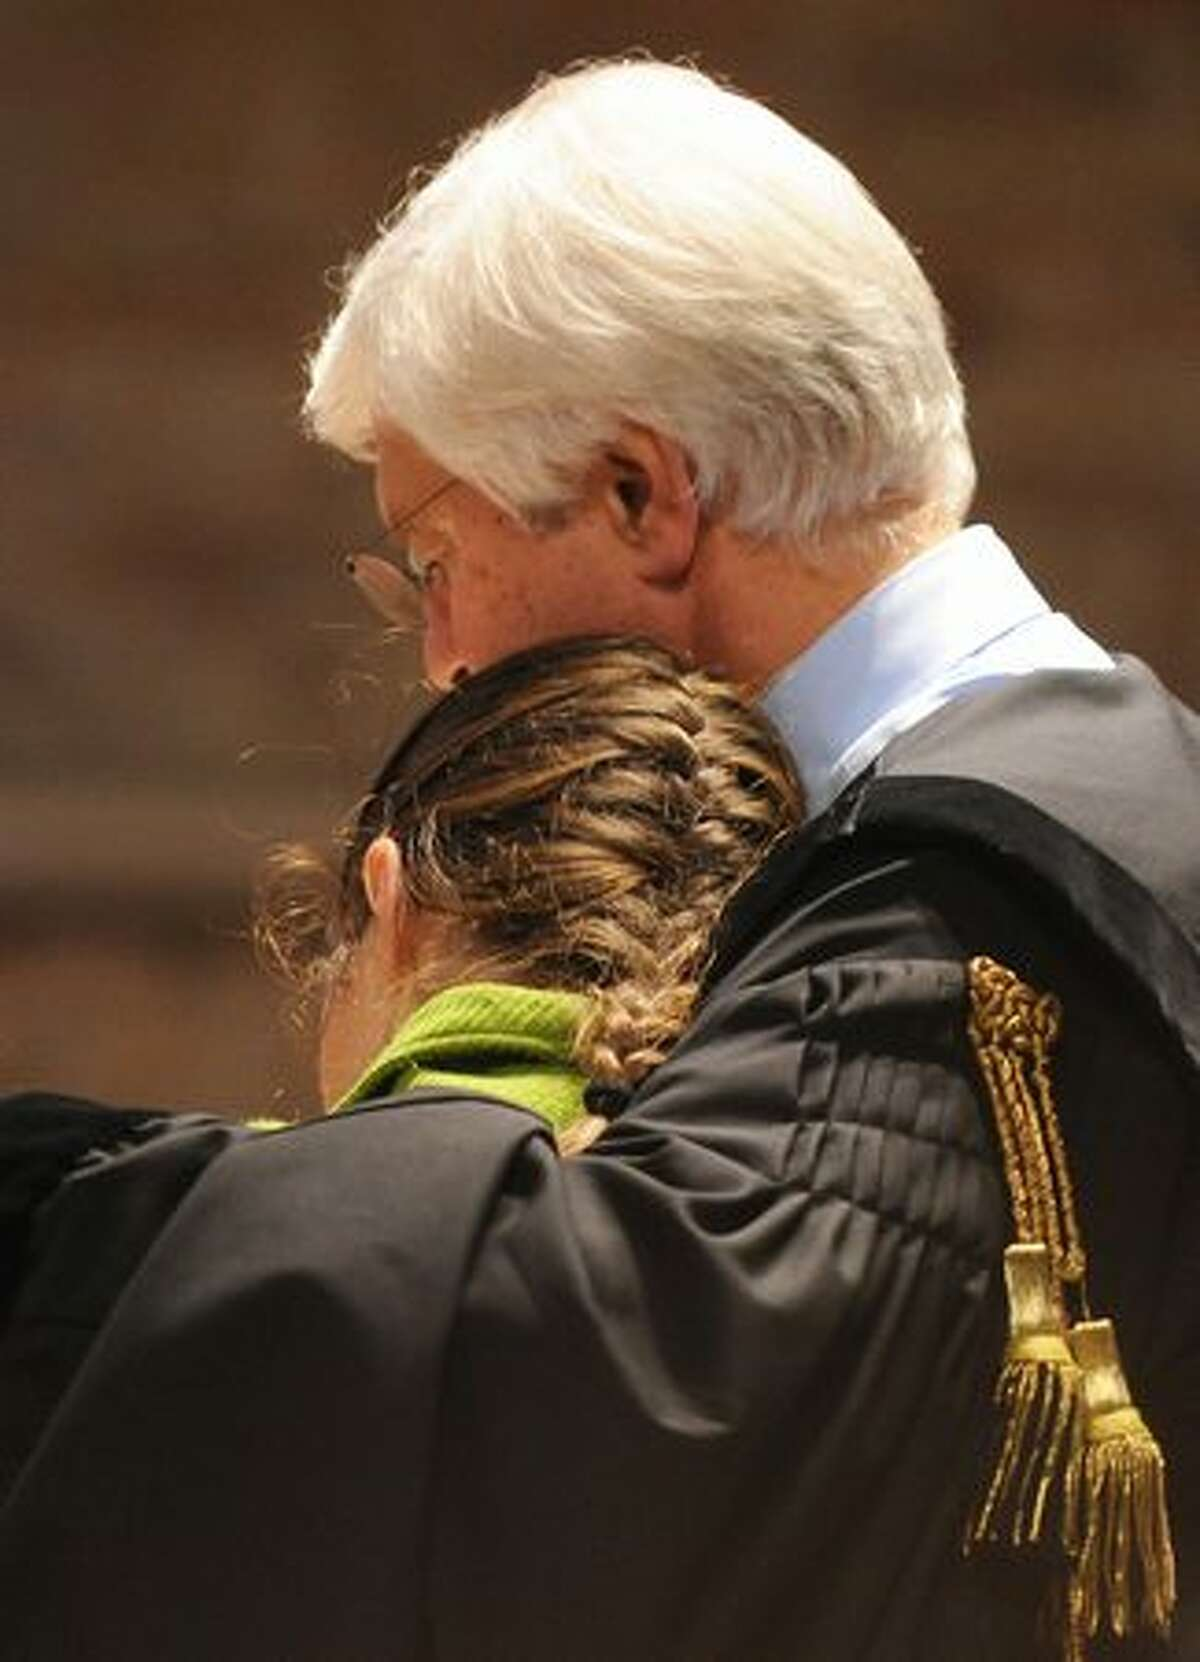 Amanda Knox is comforted by her lawyer Carlo Dalla Vedova during her trial in Perugia, Italy. Knox asked a jury not to put